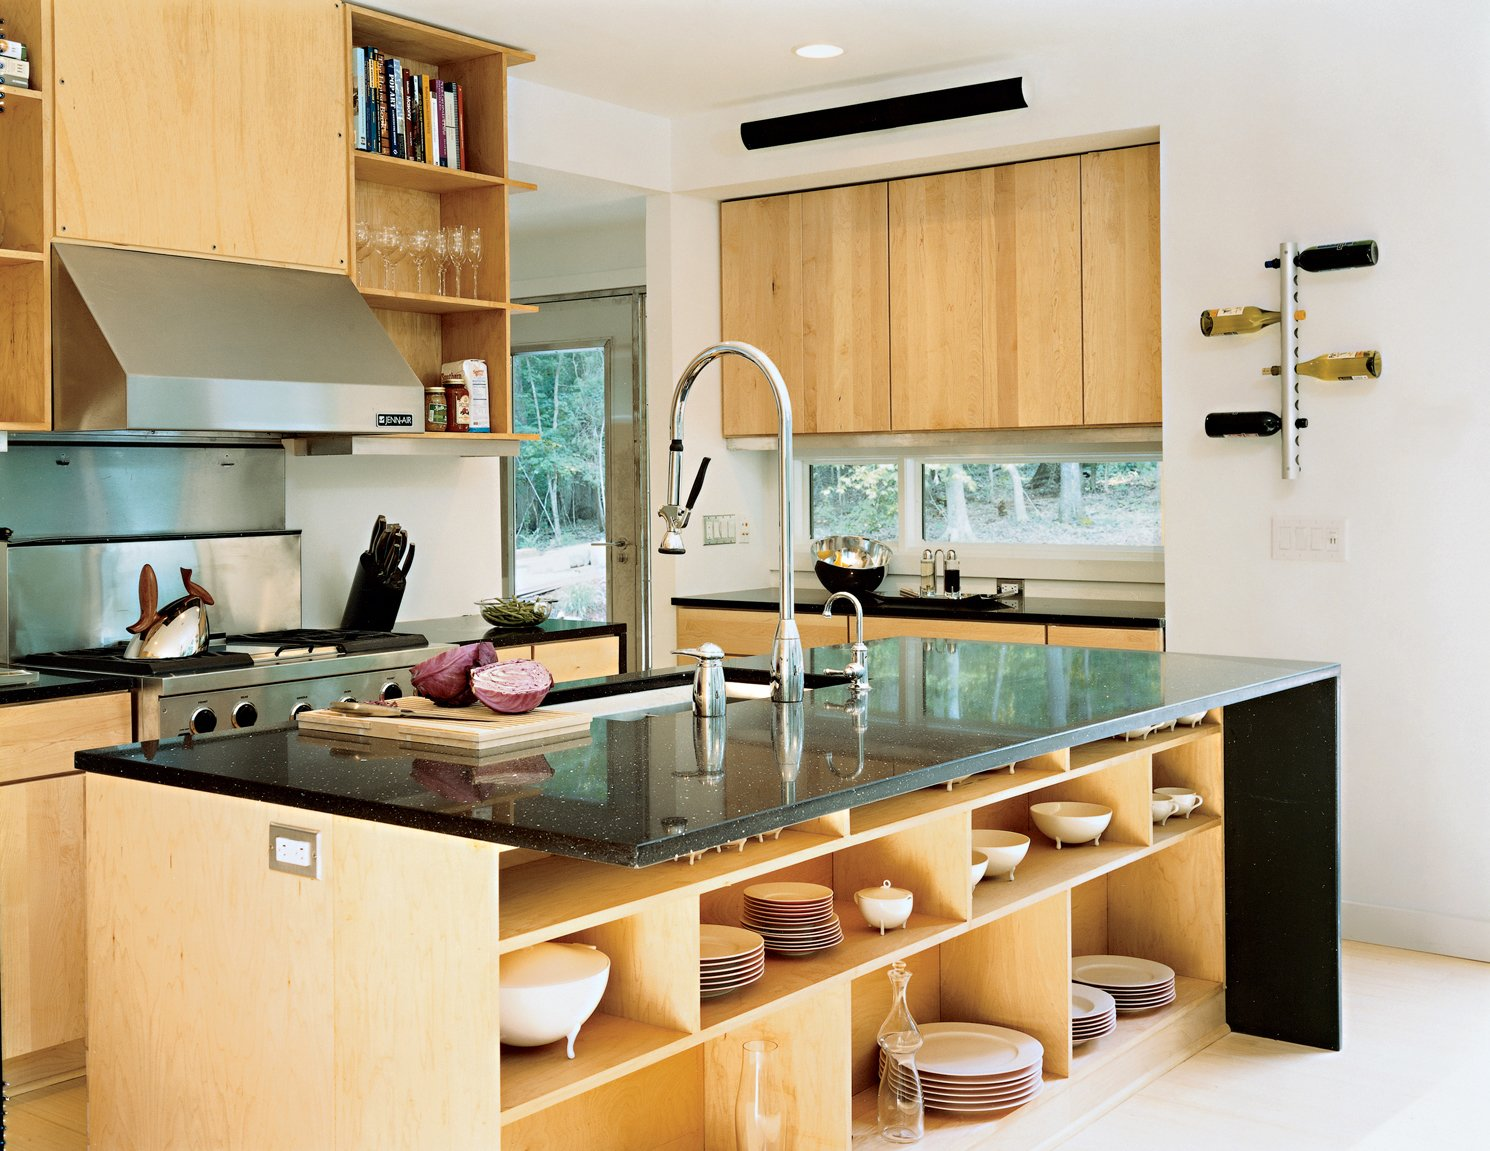 Wieler and Tung wanted a space conducive to entertaining, and this open kitchen delivers. It features a stainless steel refrigerator, Pro-Style gas range, hood, backsplash, and two-rack tub dishwasher, all from Jenn-Air. The ebony countertop, which allows the chef to interact easily with guests, is from Caesarstone. The distinctive faucet and Poise kitchen sink are from Kohler. Maple cabinets by Merillat (installed flush with the wall to save space and look sleek) provide ample storage space for all kitchen essentials. The under-counter storage space holds Victoria china  designed by Oscar Tusquets for Driade. The bread board was designed by Antonio Citterio for Iittala's Tools collection. The wine rack and oil/vinegar cruets are from Rosendahl.  Photo 7 of 12 in Prefab, Proven